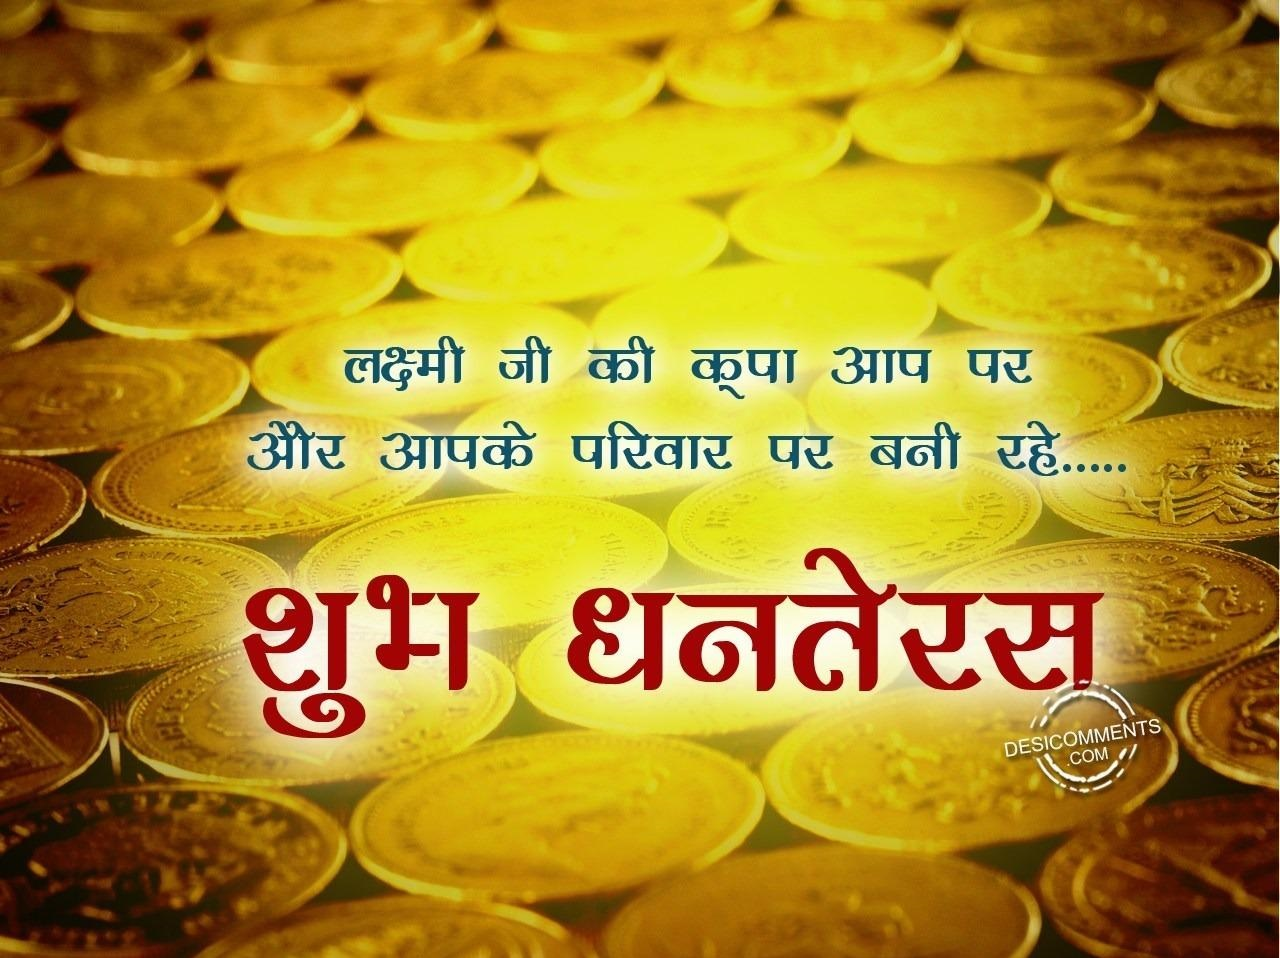 Happy Dhanteras Facebook Profile Picture